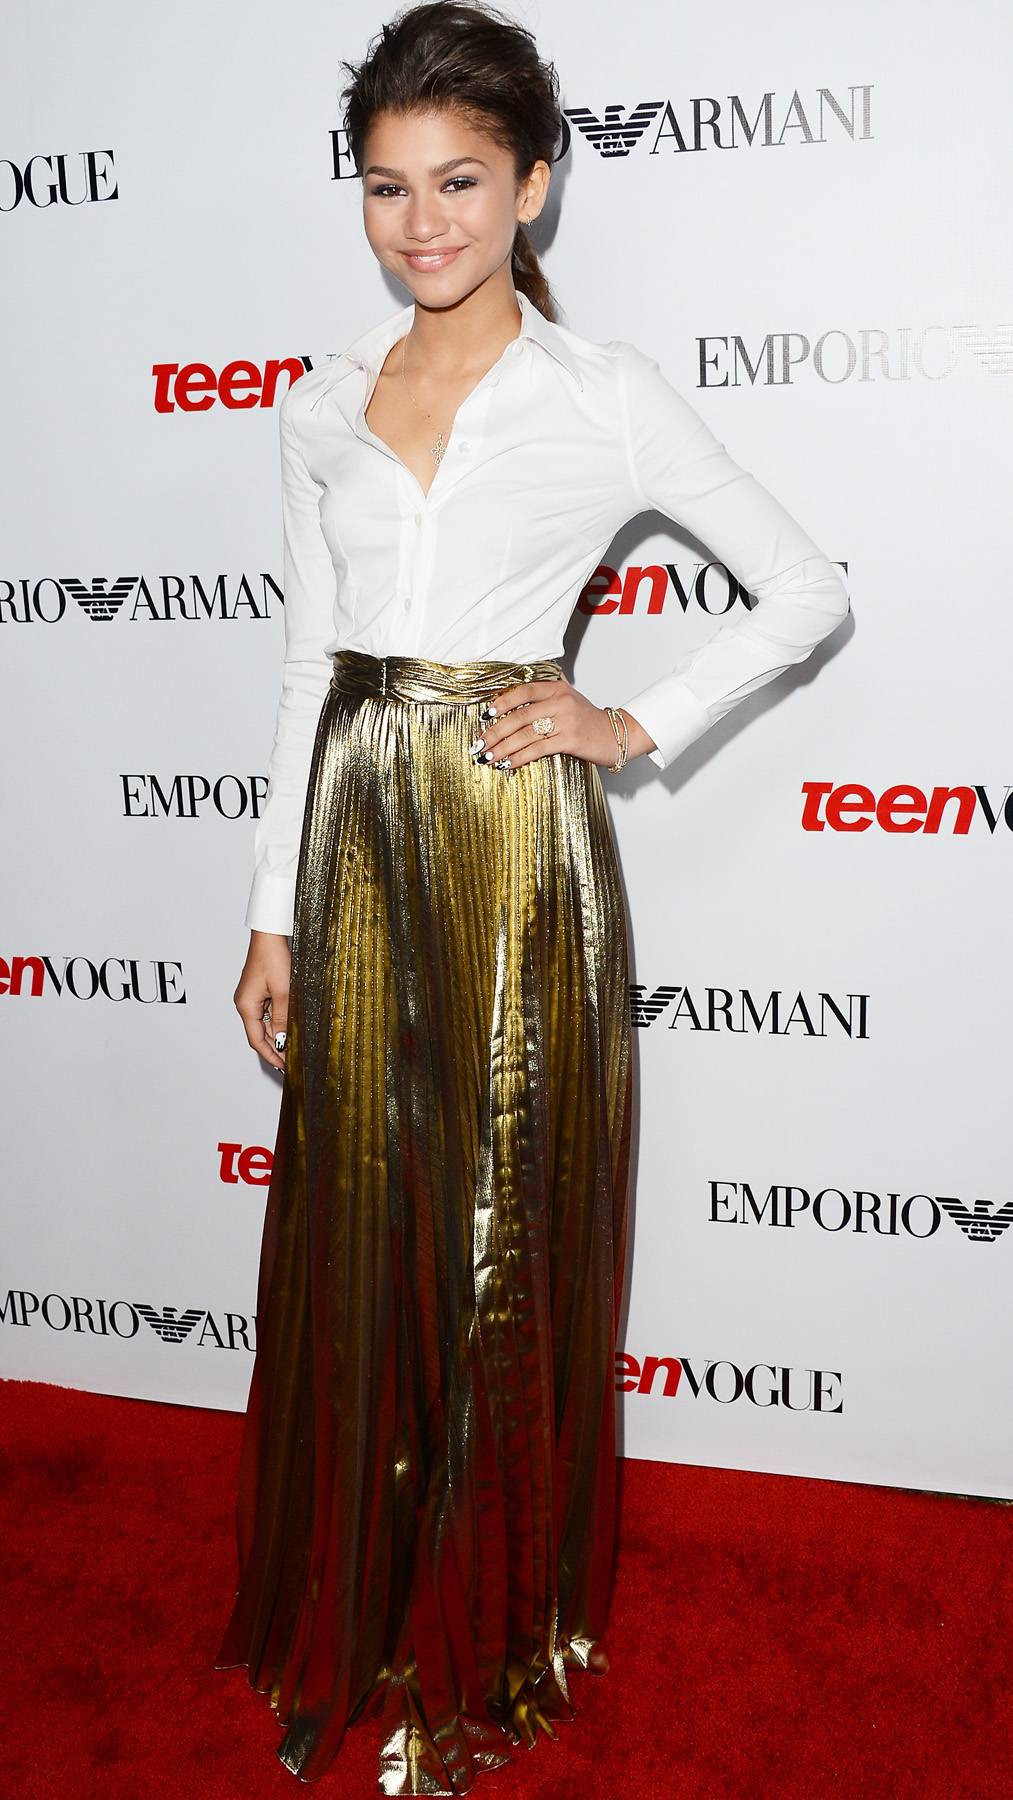 Golden Girl - Another thing to love about Zendaya is that she's glamorous without ever showing too much. We'd never think to pair a crisp, white button-down and with a metallic skirt, but the overall look is young and polished.(Photo: Jason Merritt/Getty Images)